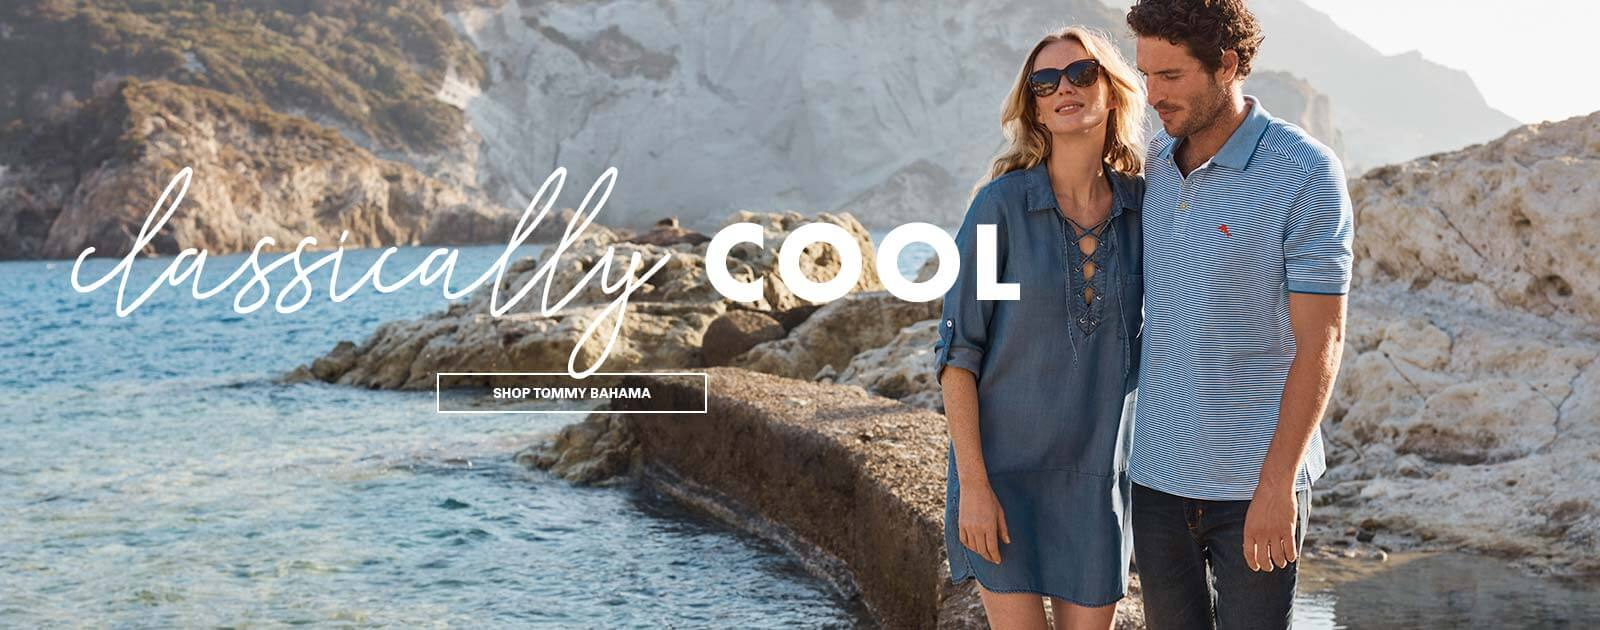 classically cool tommy bahama clothing